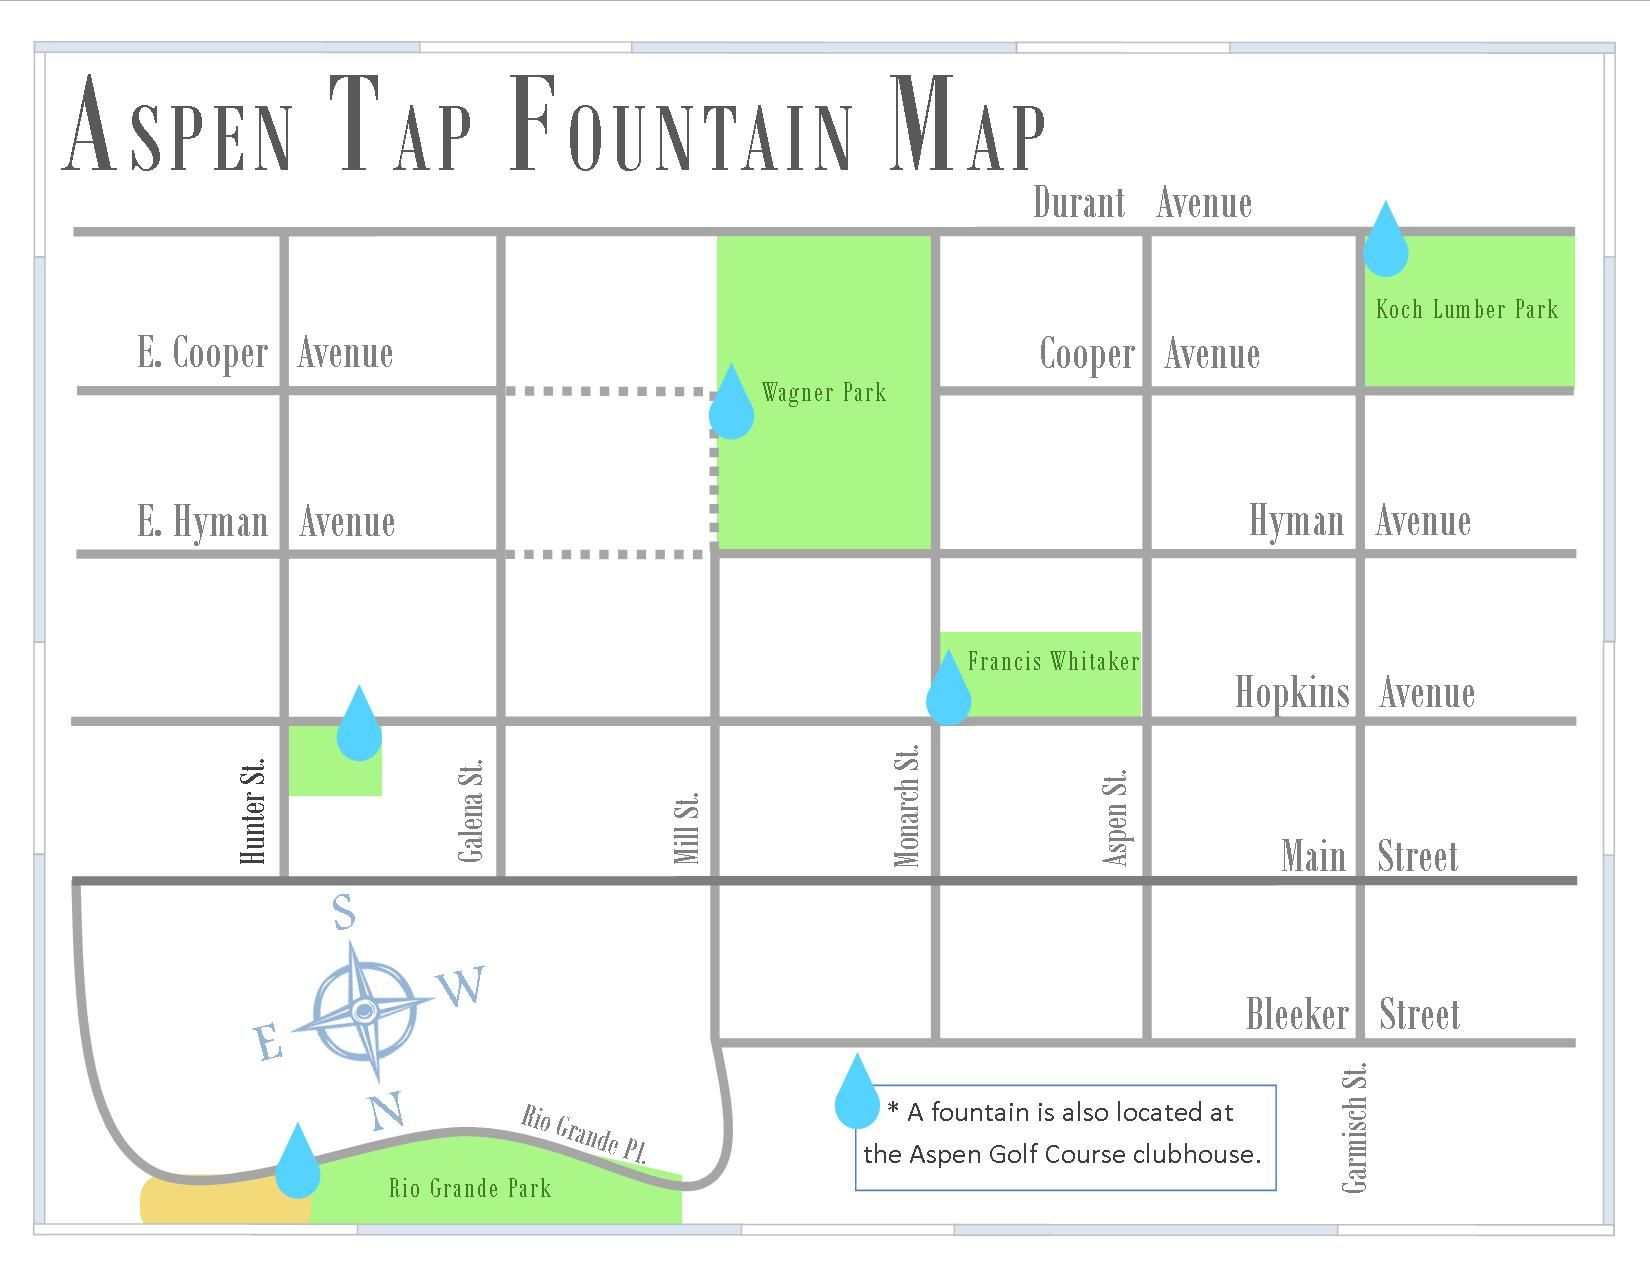 Hydrate If You Re Not Used To Our Elevation Drink Extra Water Aspen Tap Fountain Map Water Department